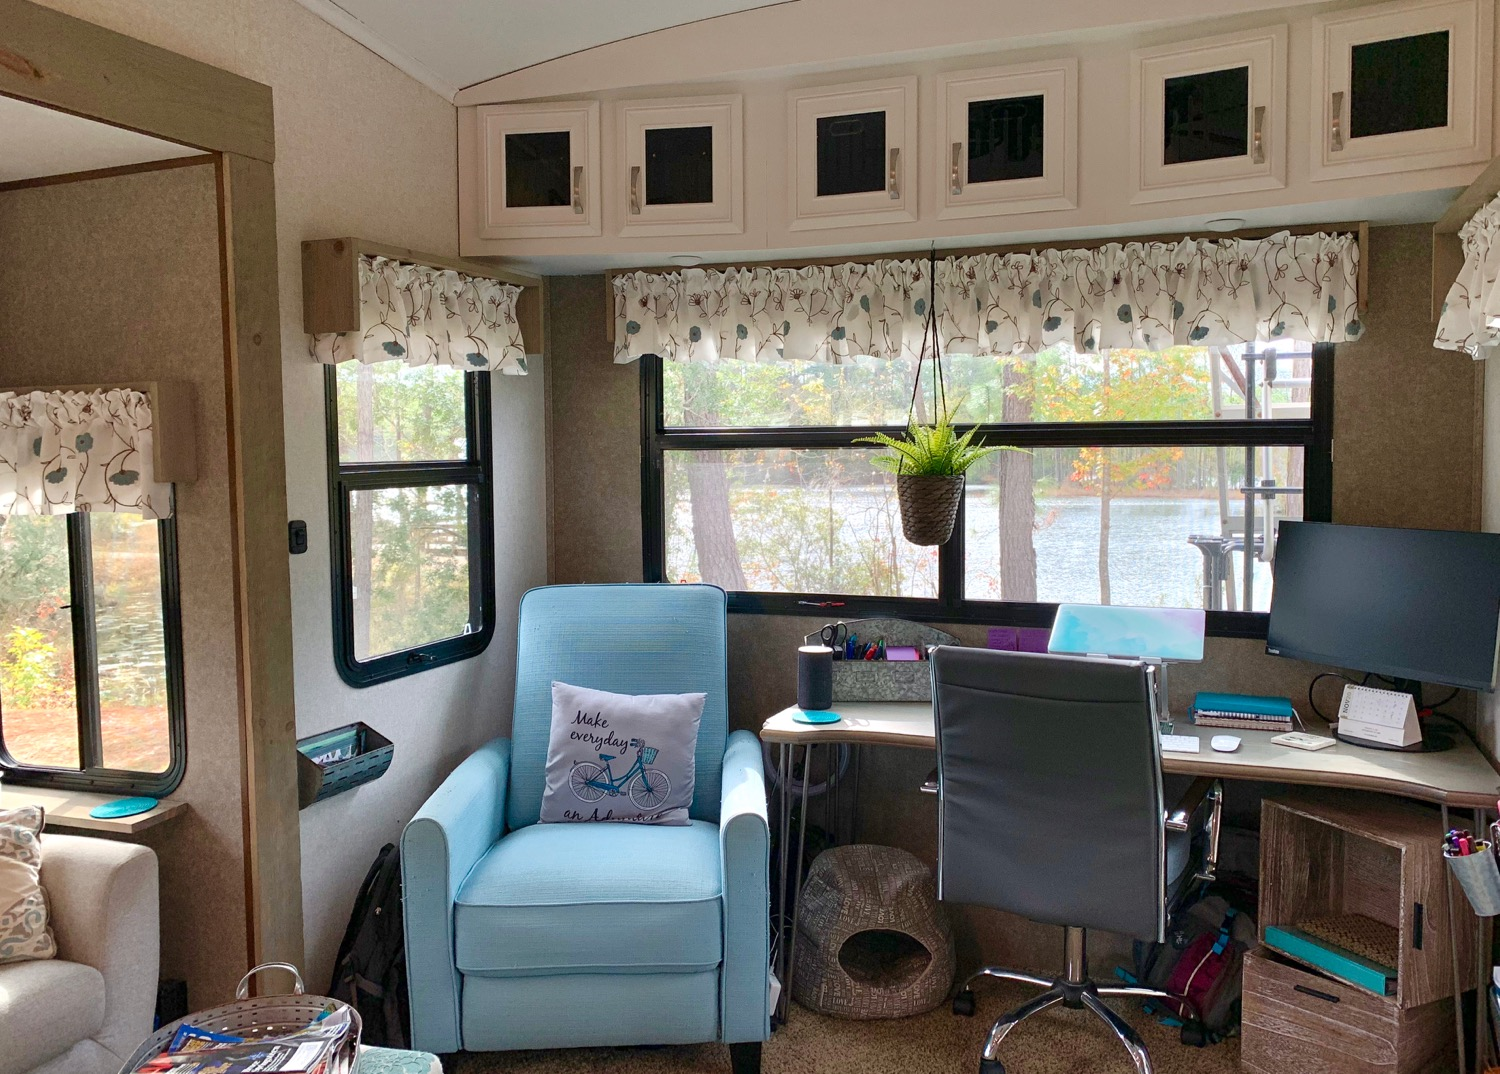 RV Makeover: Removed sofa and replaced with custom desk and chair.